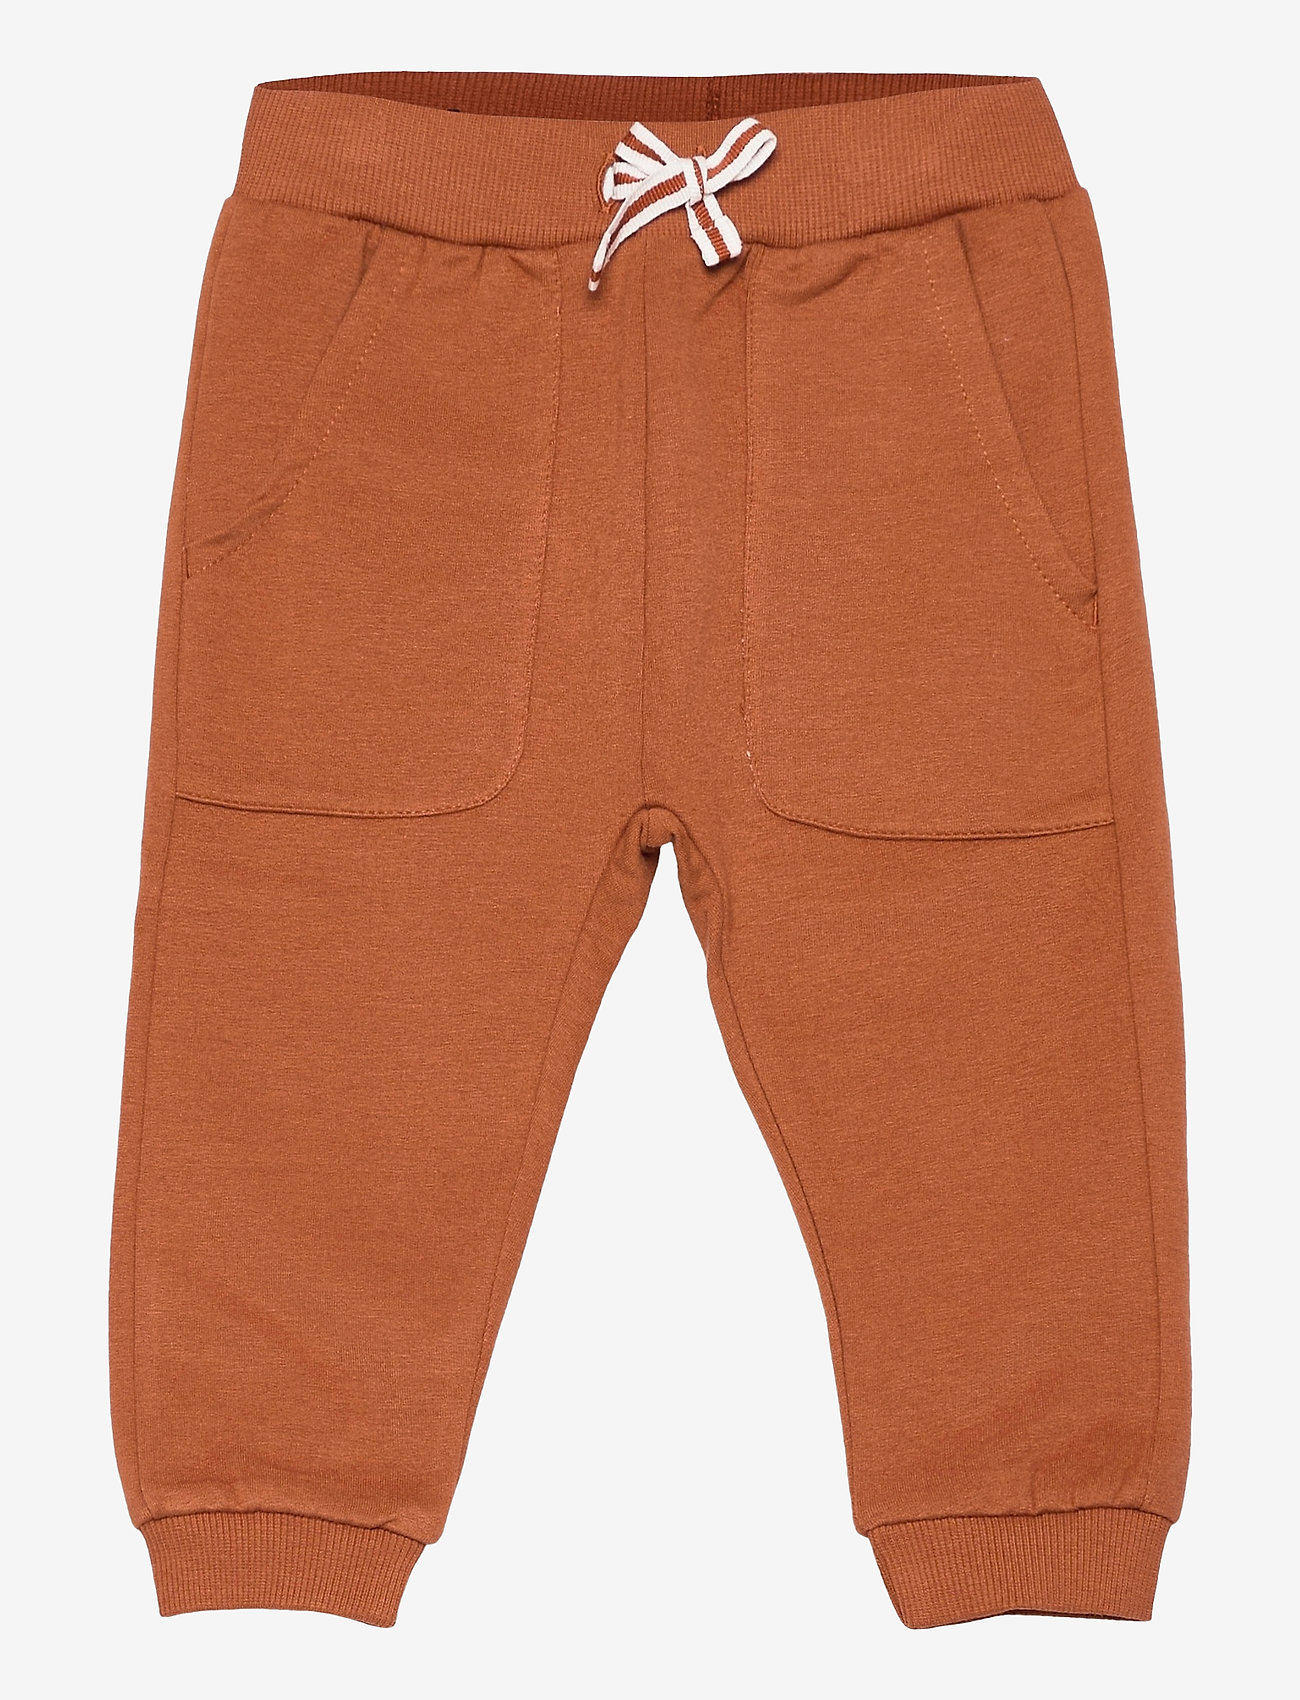 Hust & Claire - Gordon - Jogging Trousers - trousers - leather - 0